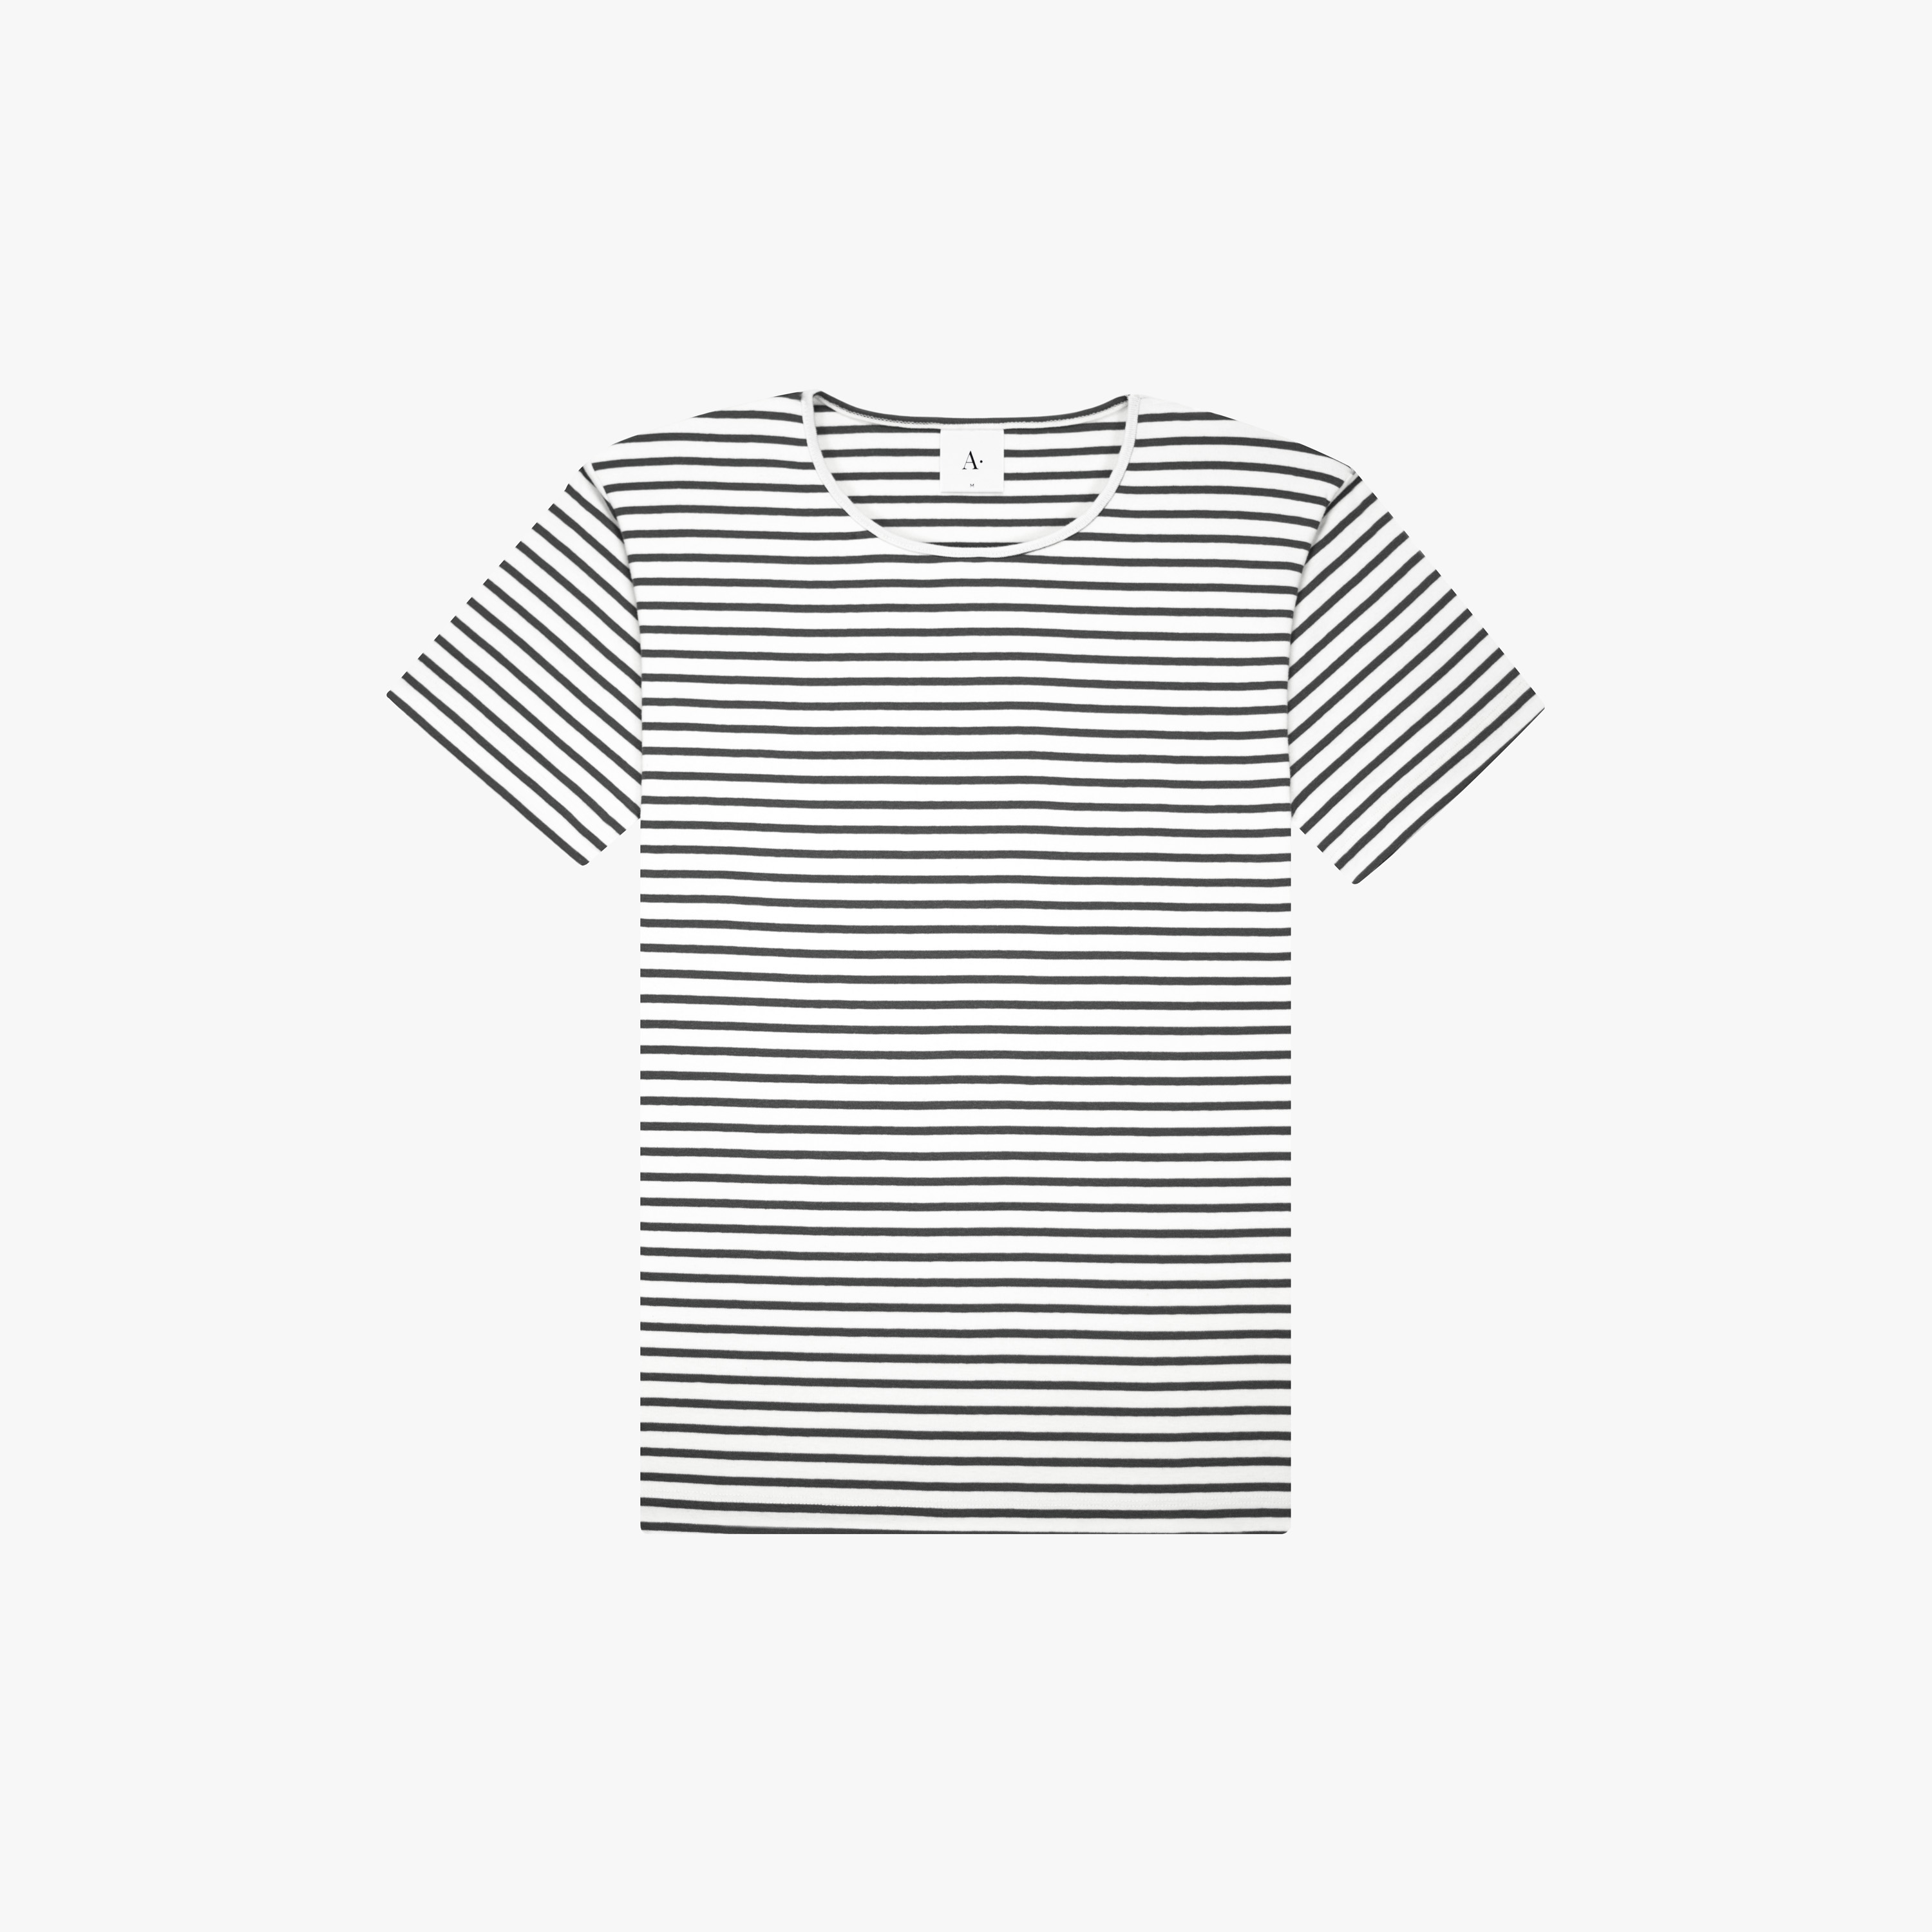 striped, white, grey, quality, luxury, premium, organic, cotton